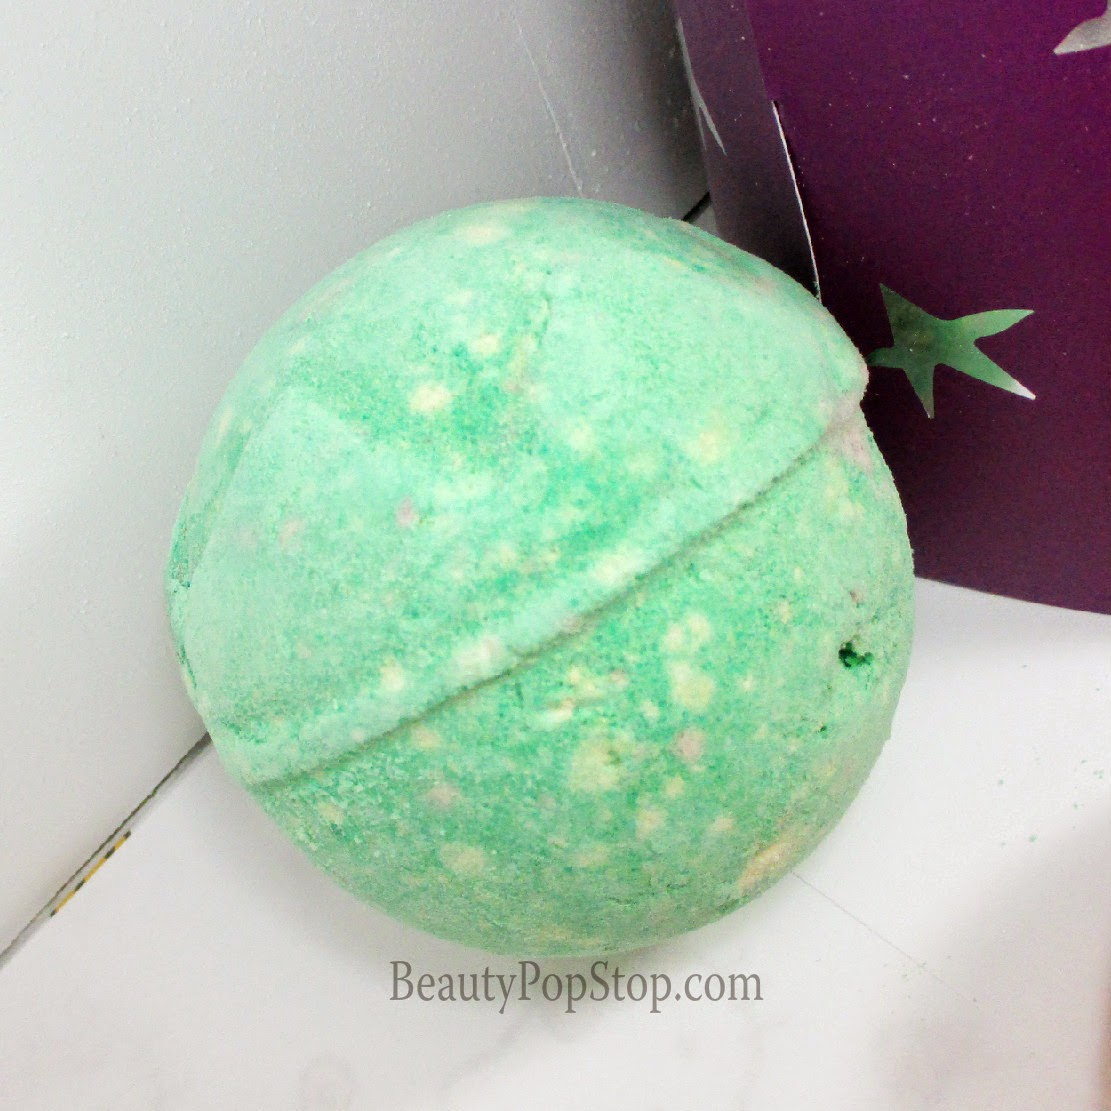 LUSH Halloween 2014 Lord of Misrule bath bomb